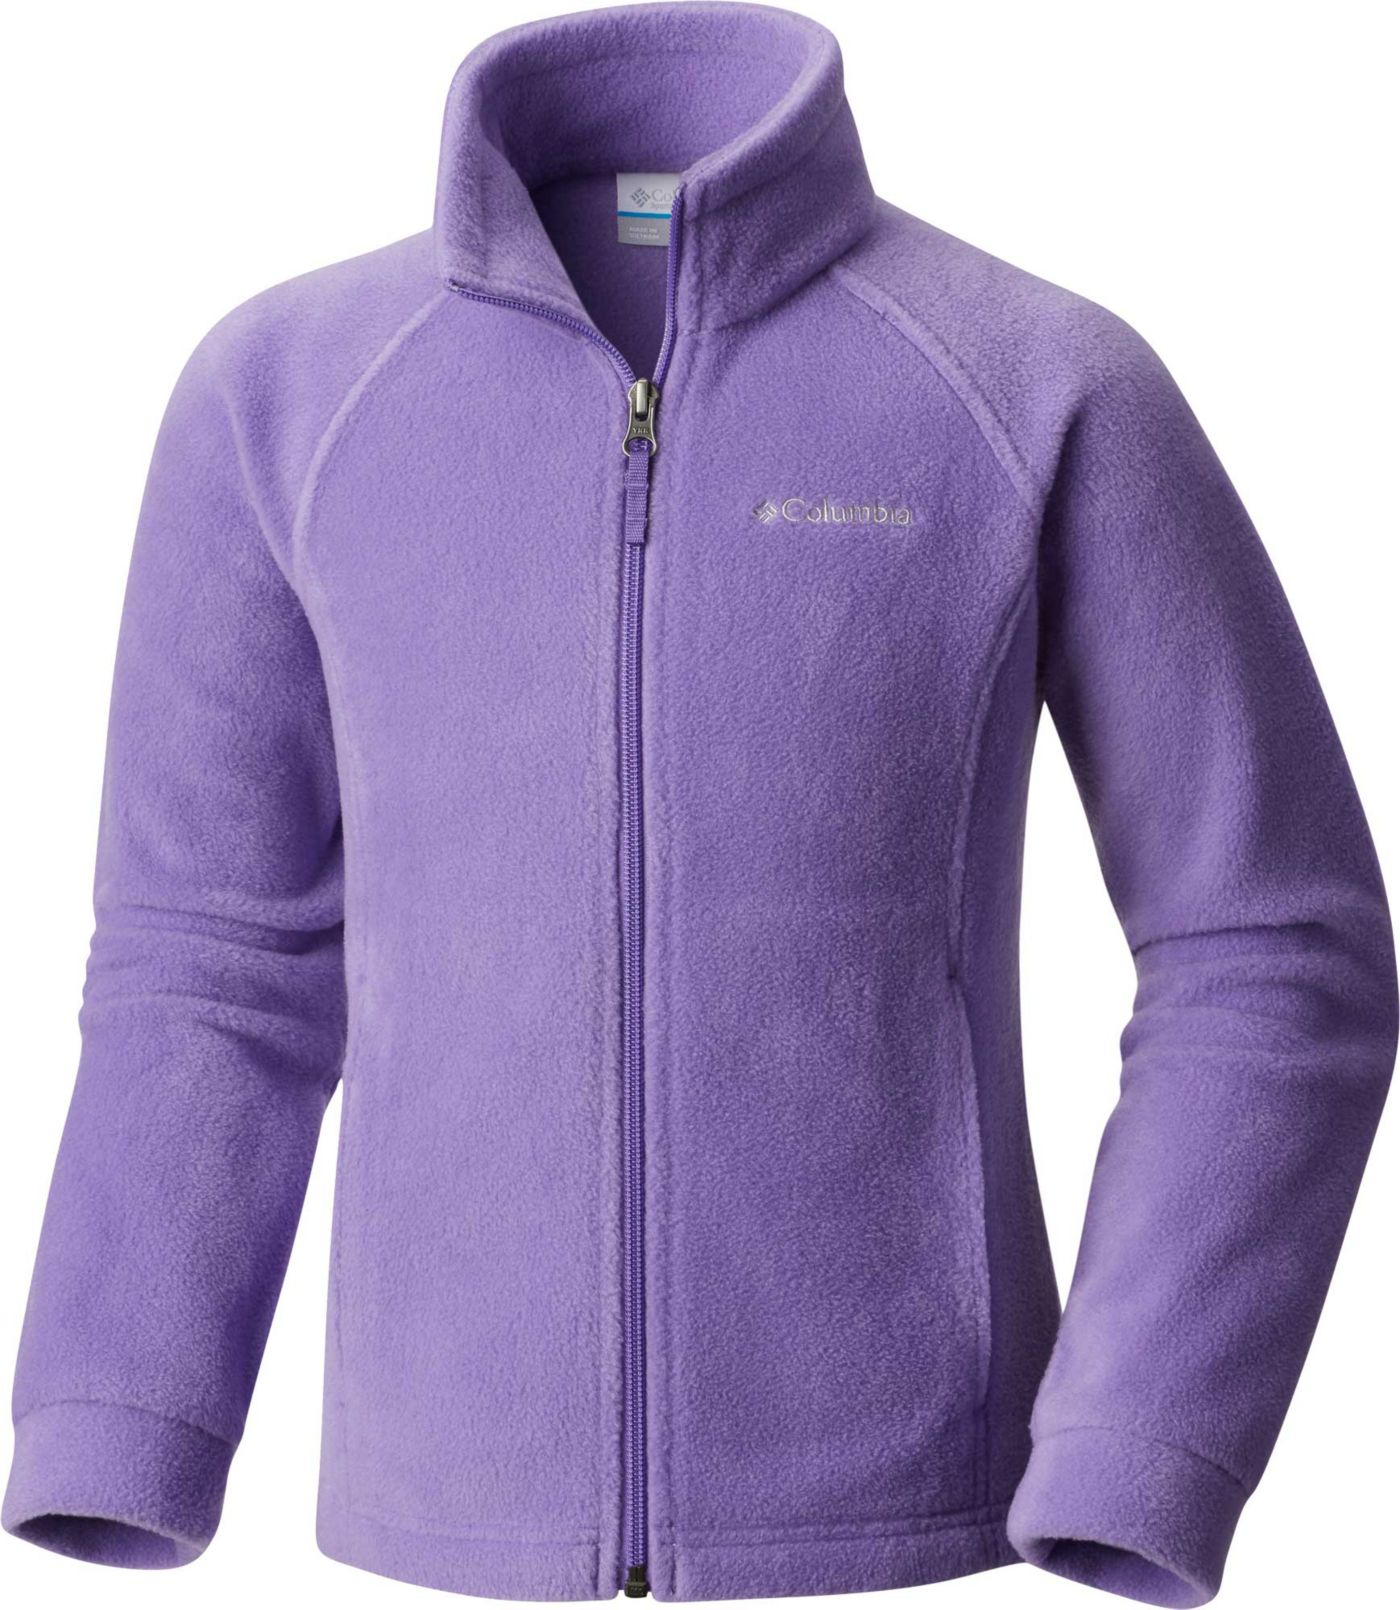 Columbia Toddler Girls' Benton Springs Fleece Jacket